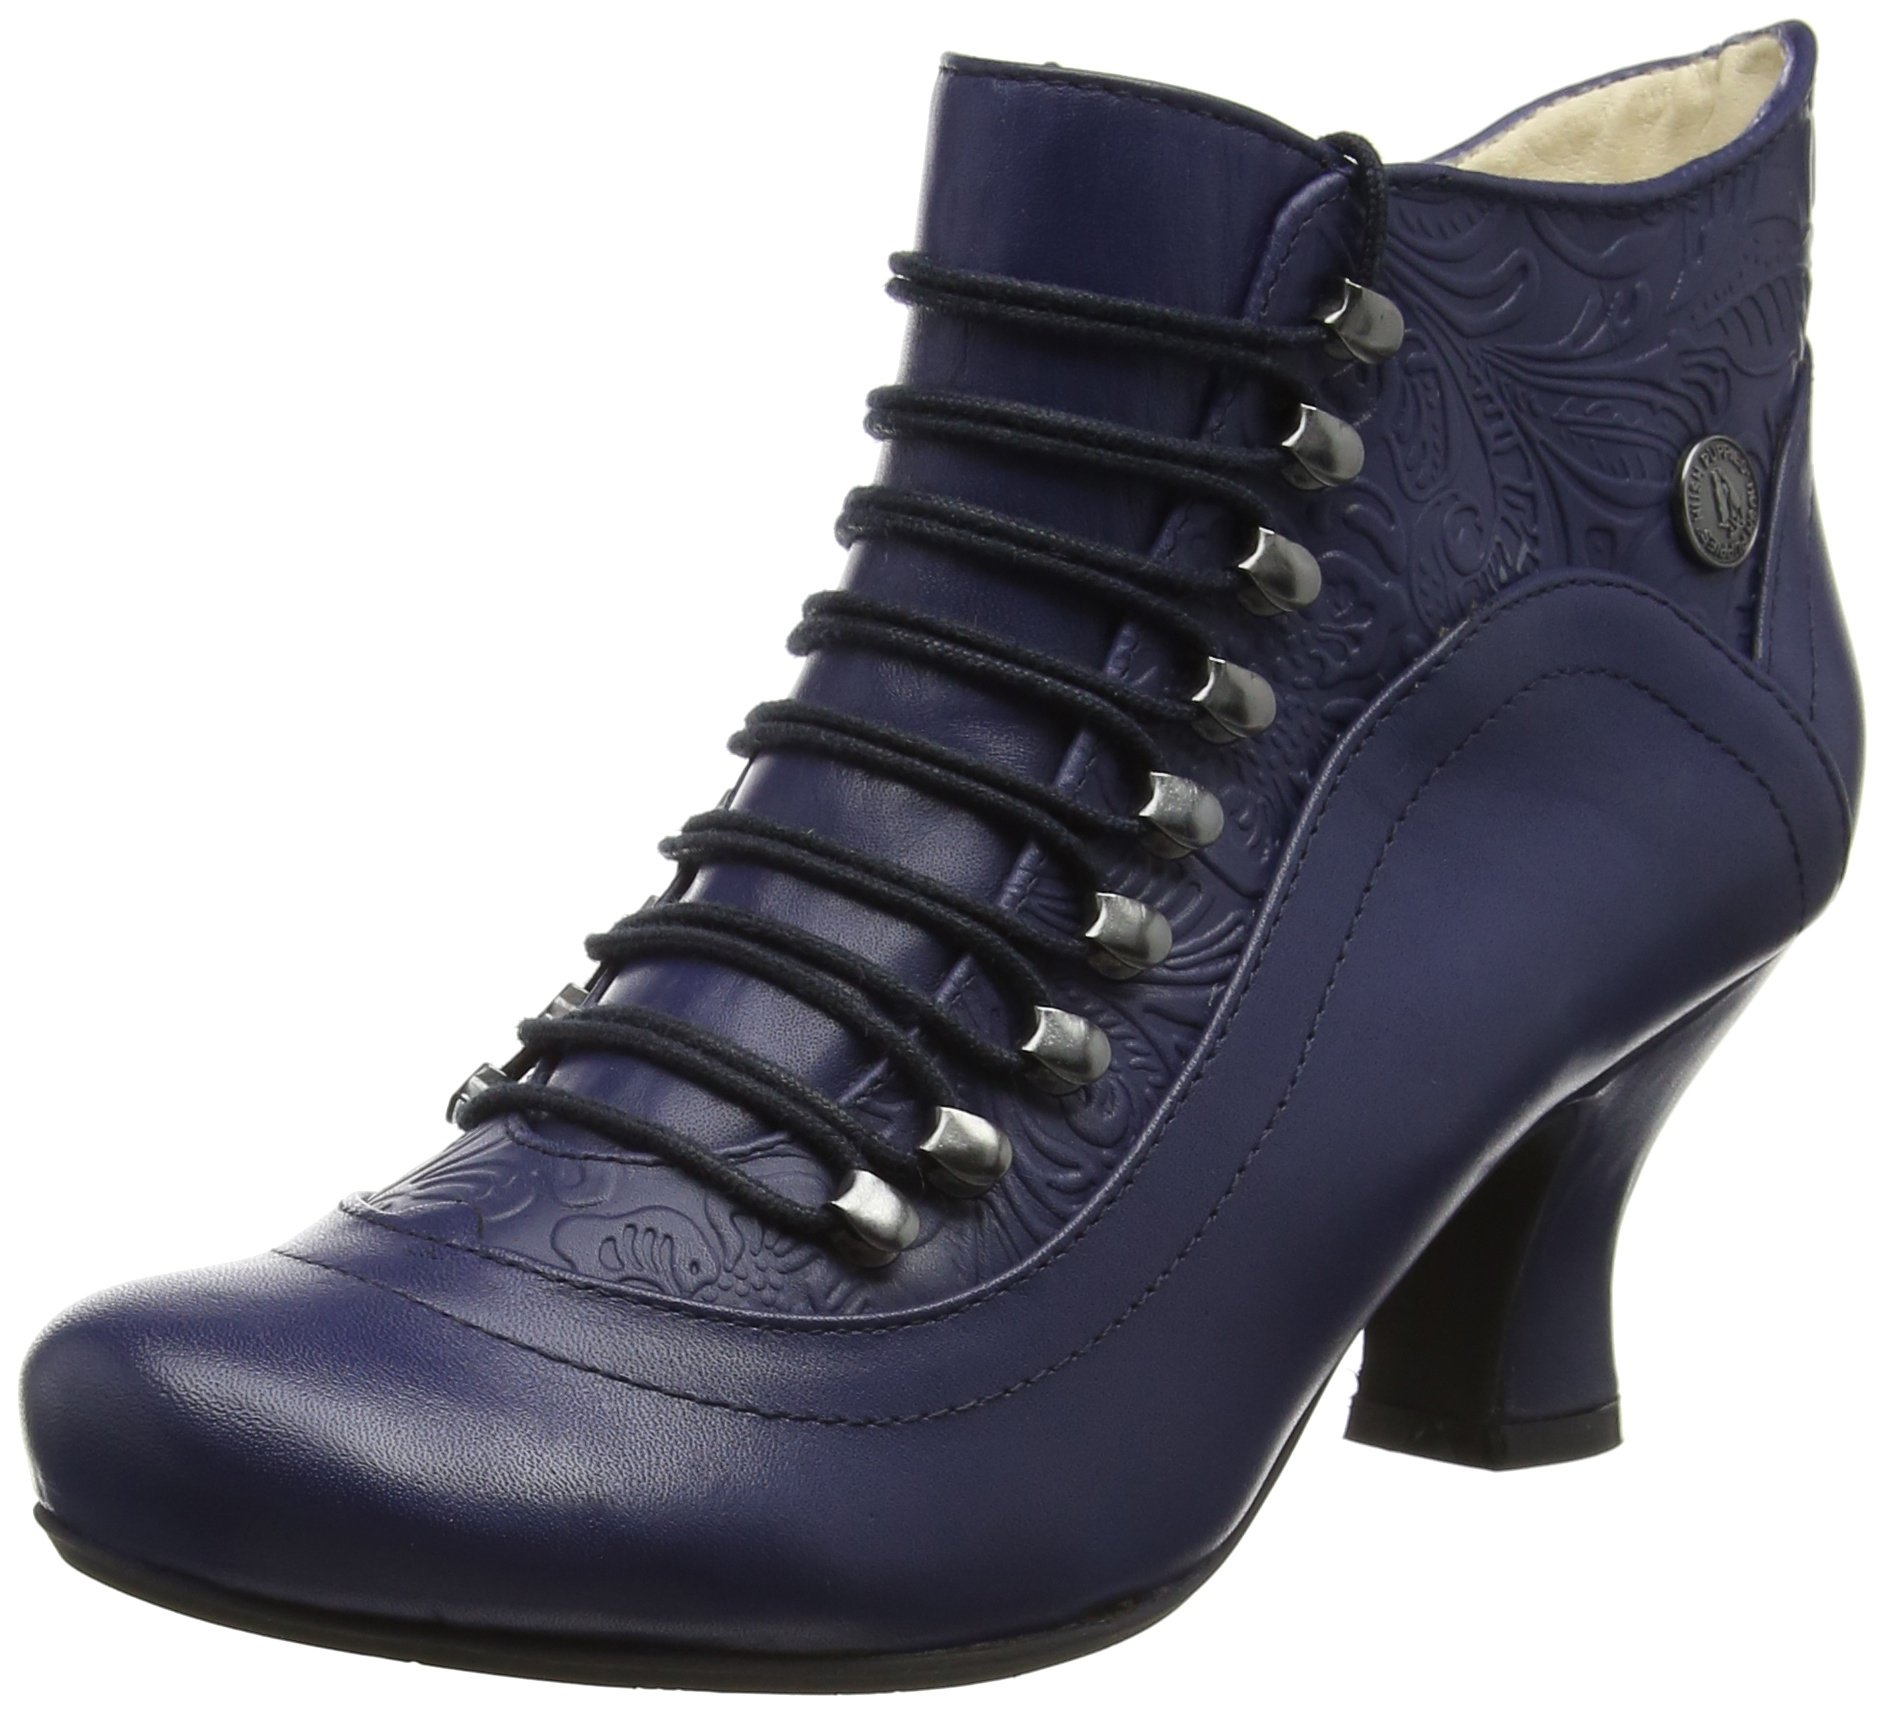 Navy Blue Hush Puppies Shoes